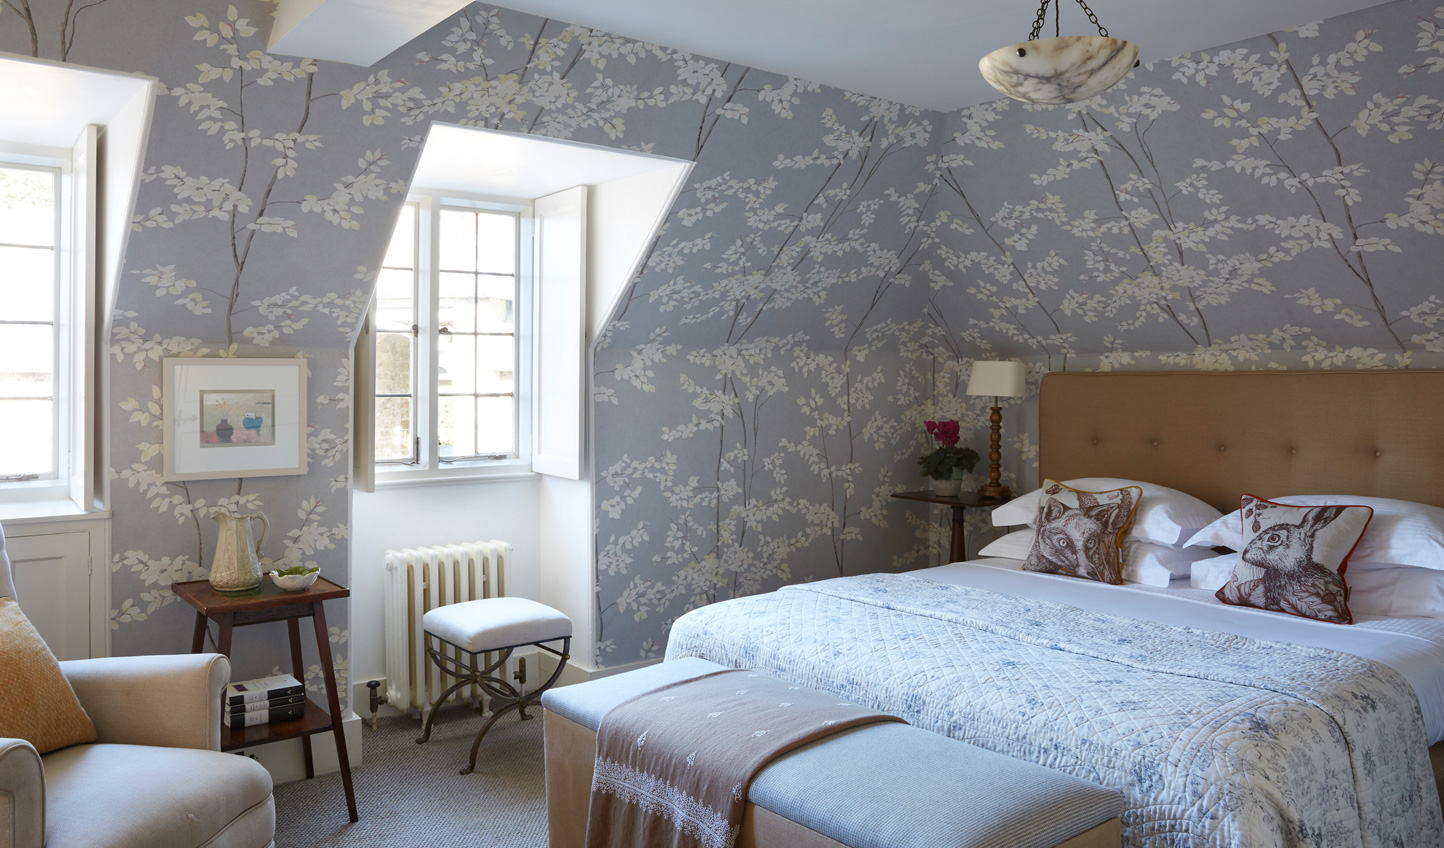 The 18 rooms have everything you neeed for a quintessential country getaway